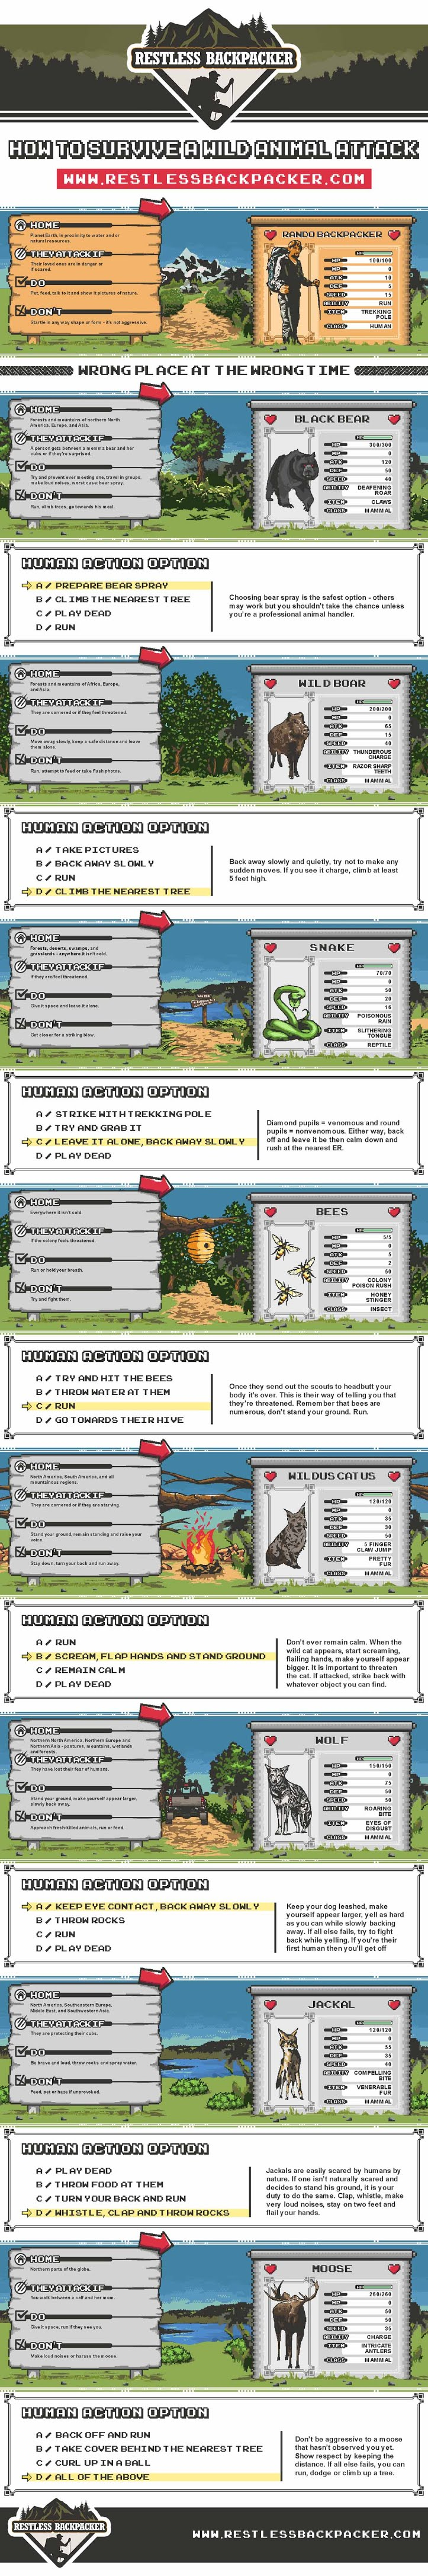 How to Survive a Wild Animal Attack #infographic